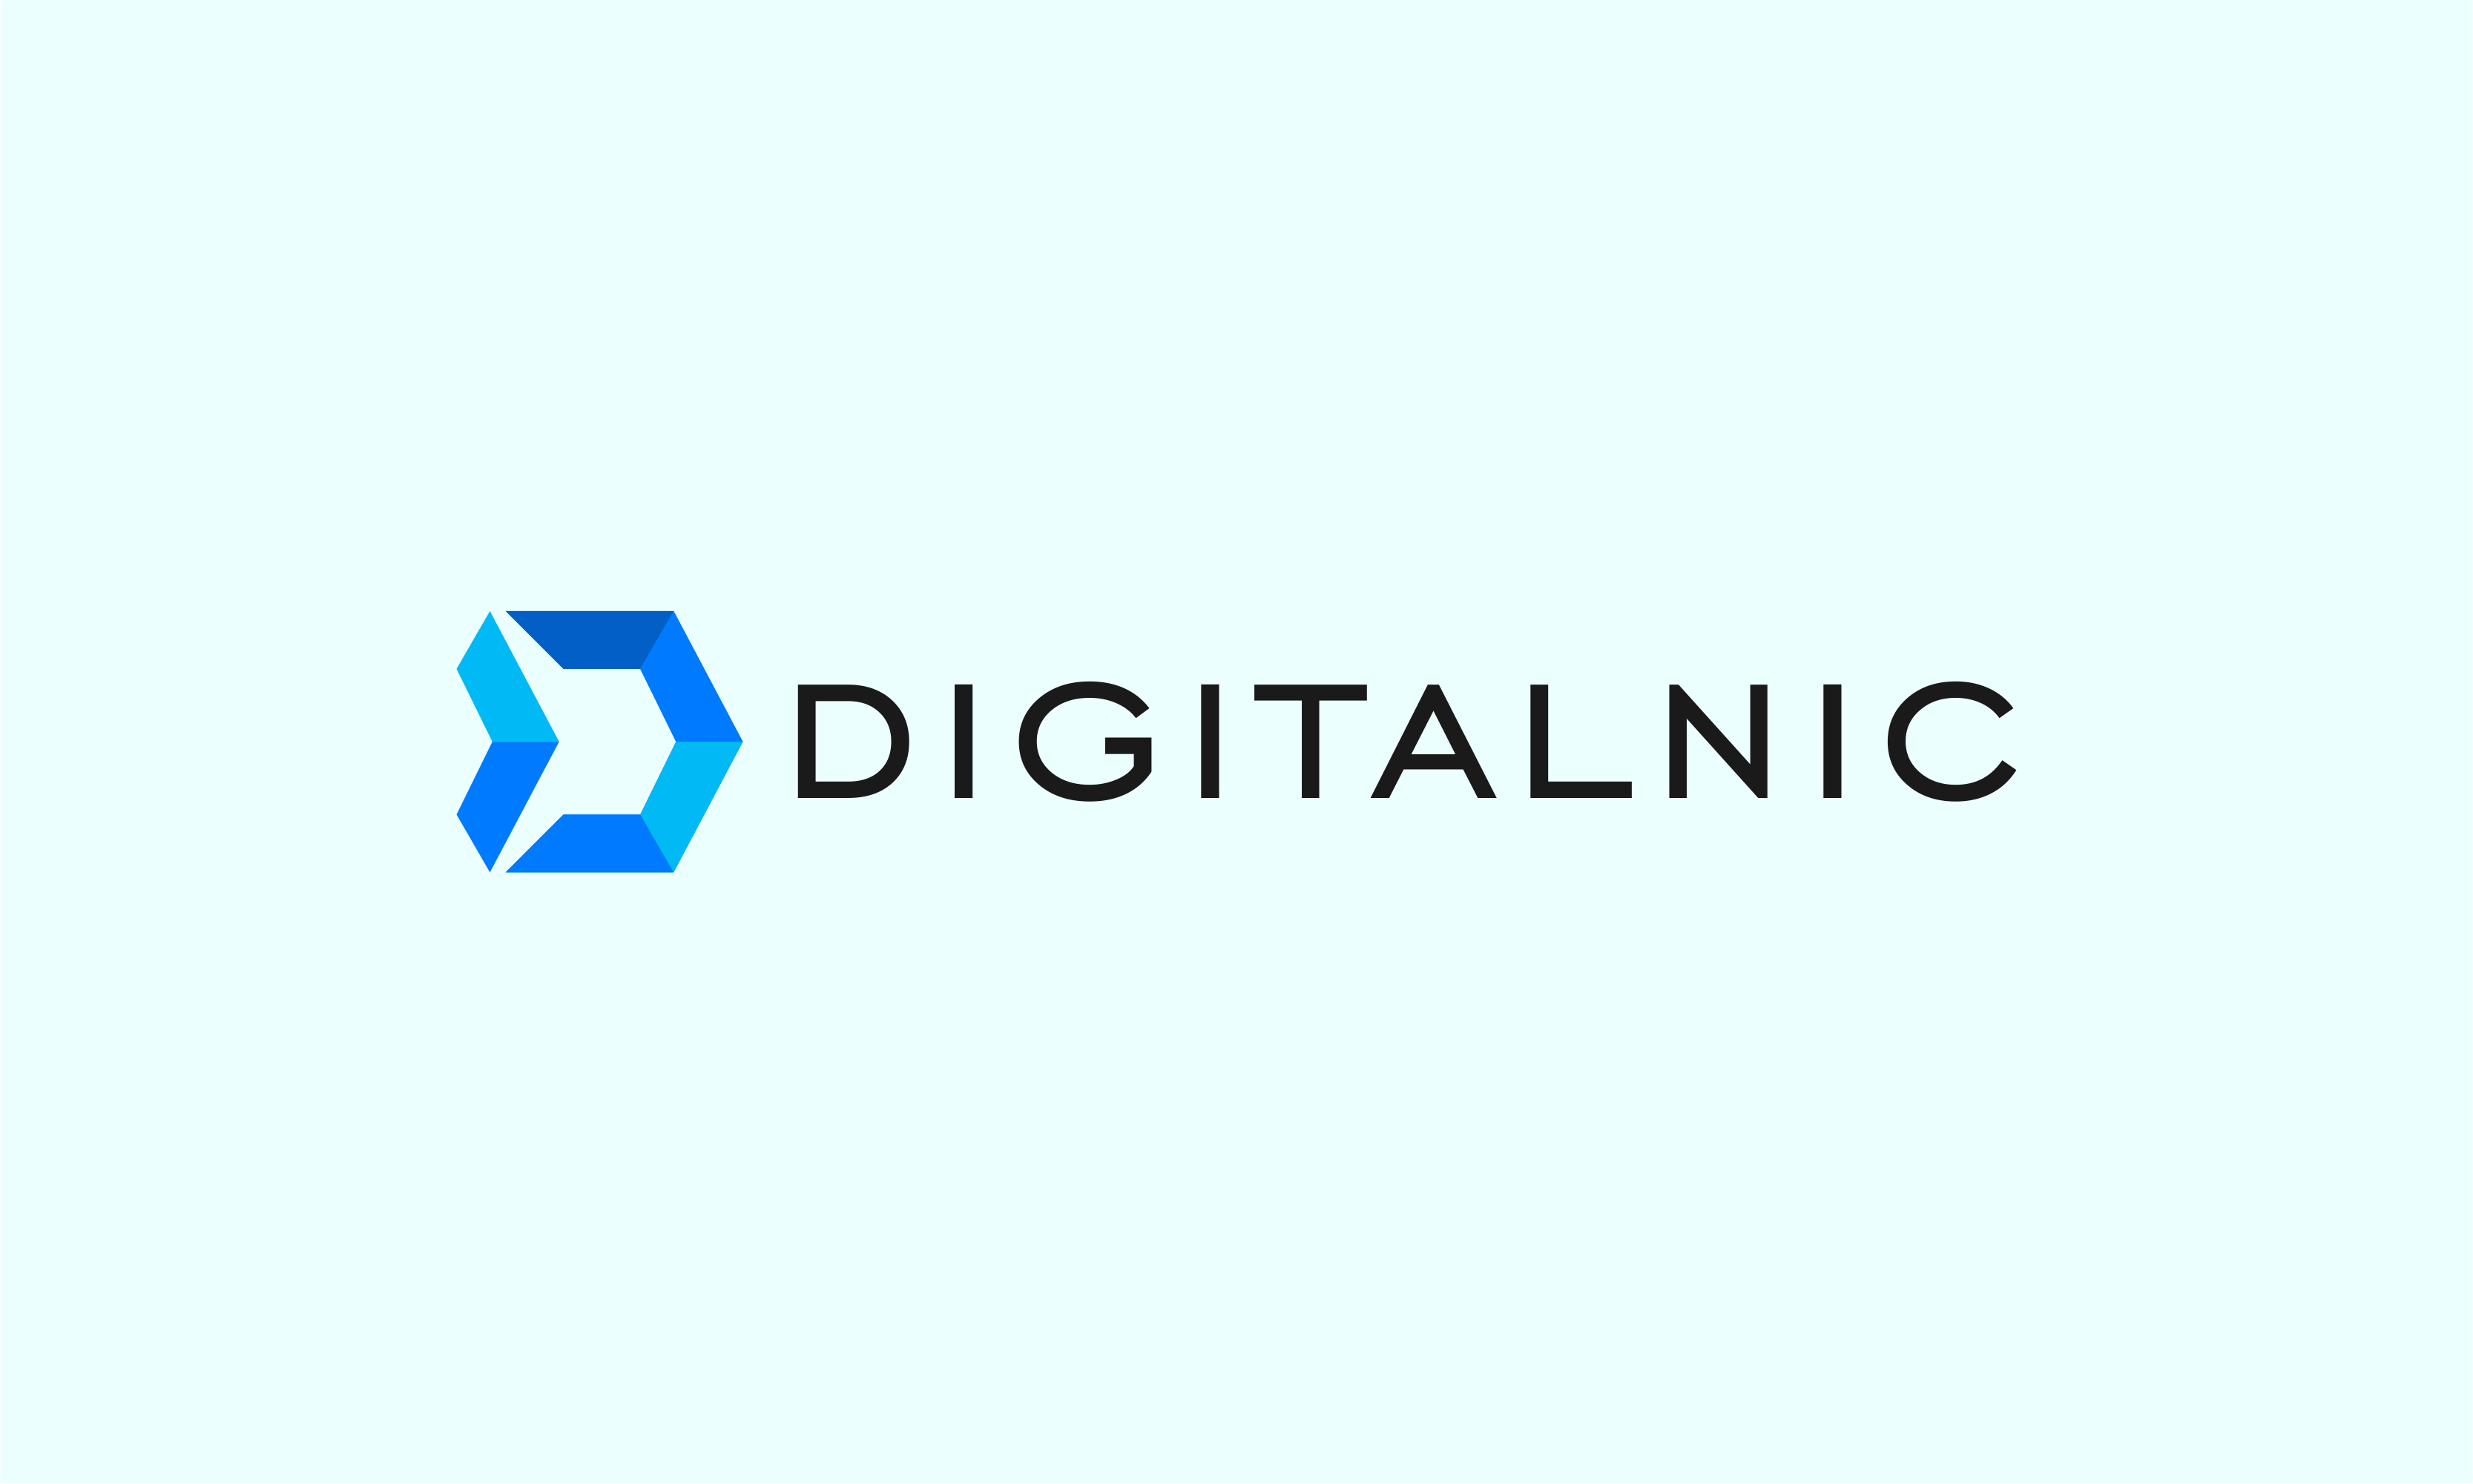 Digitalnic